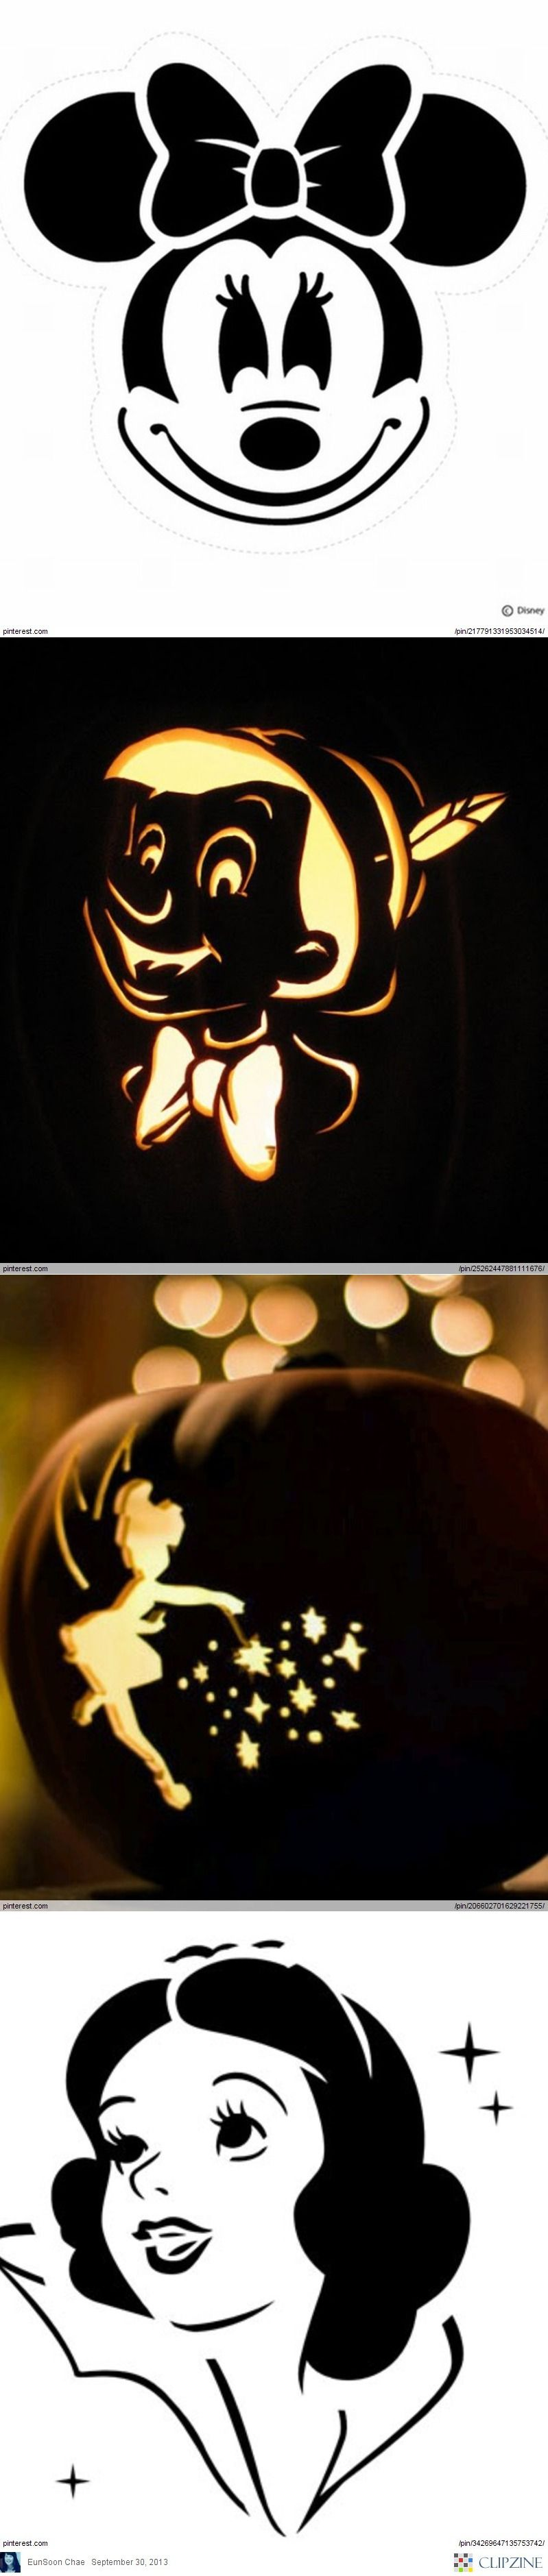 Disney Pumpkin Carving Ideas | CELEBRATION - Dia de los Muertos ...